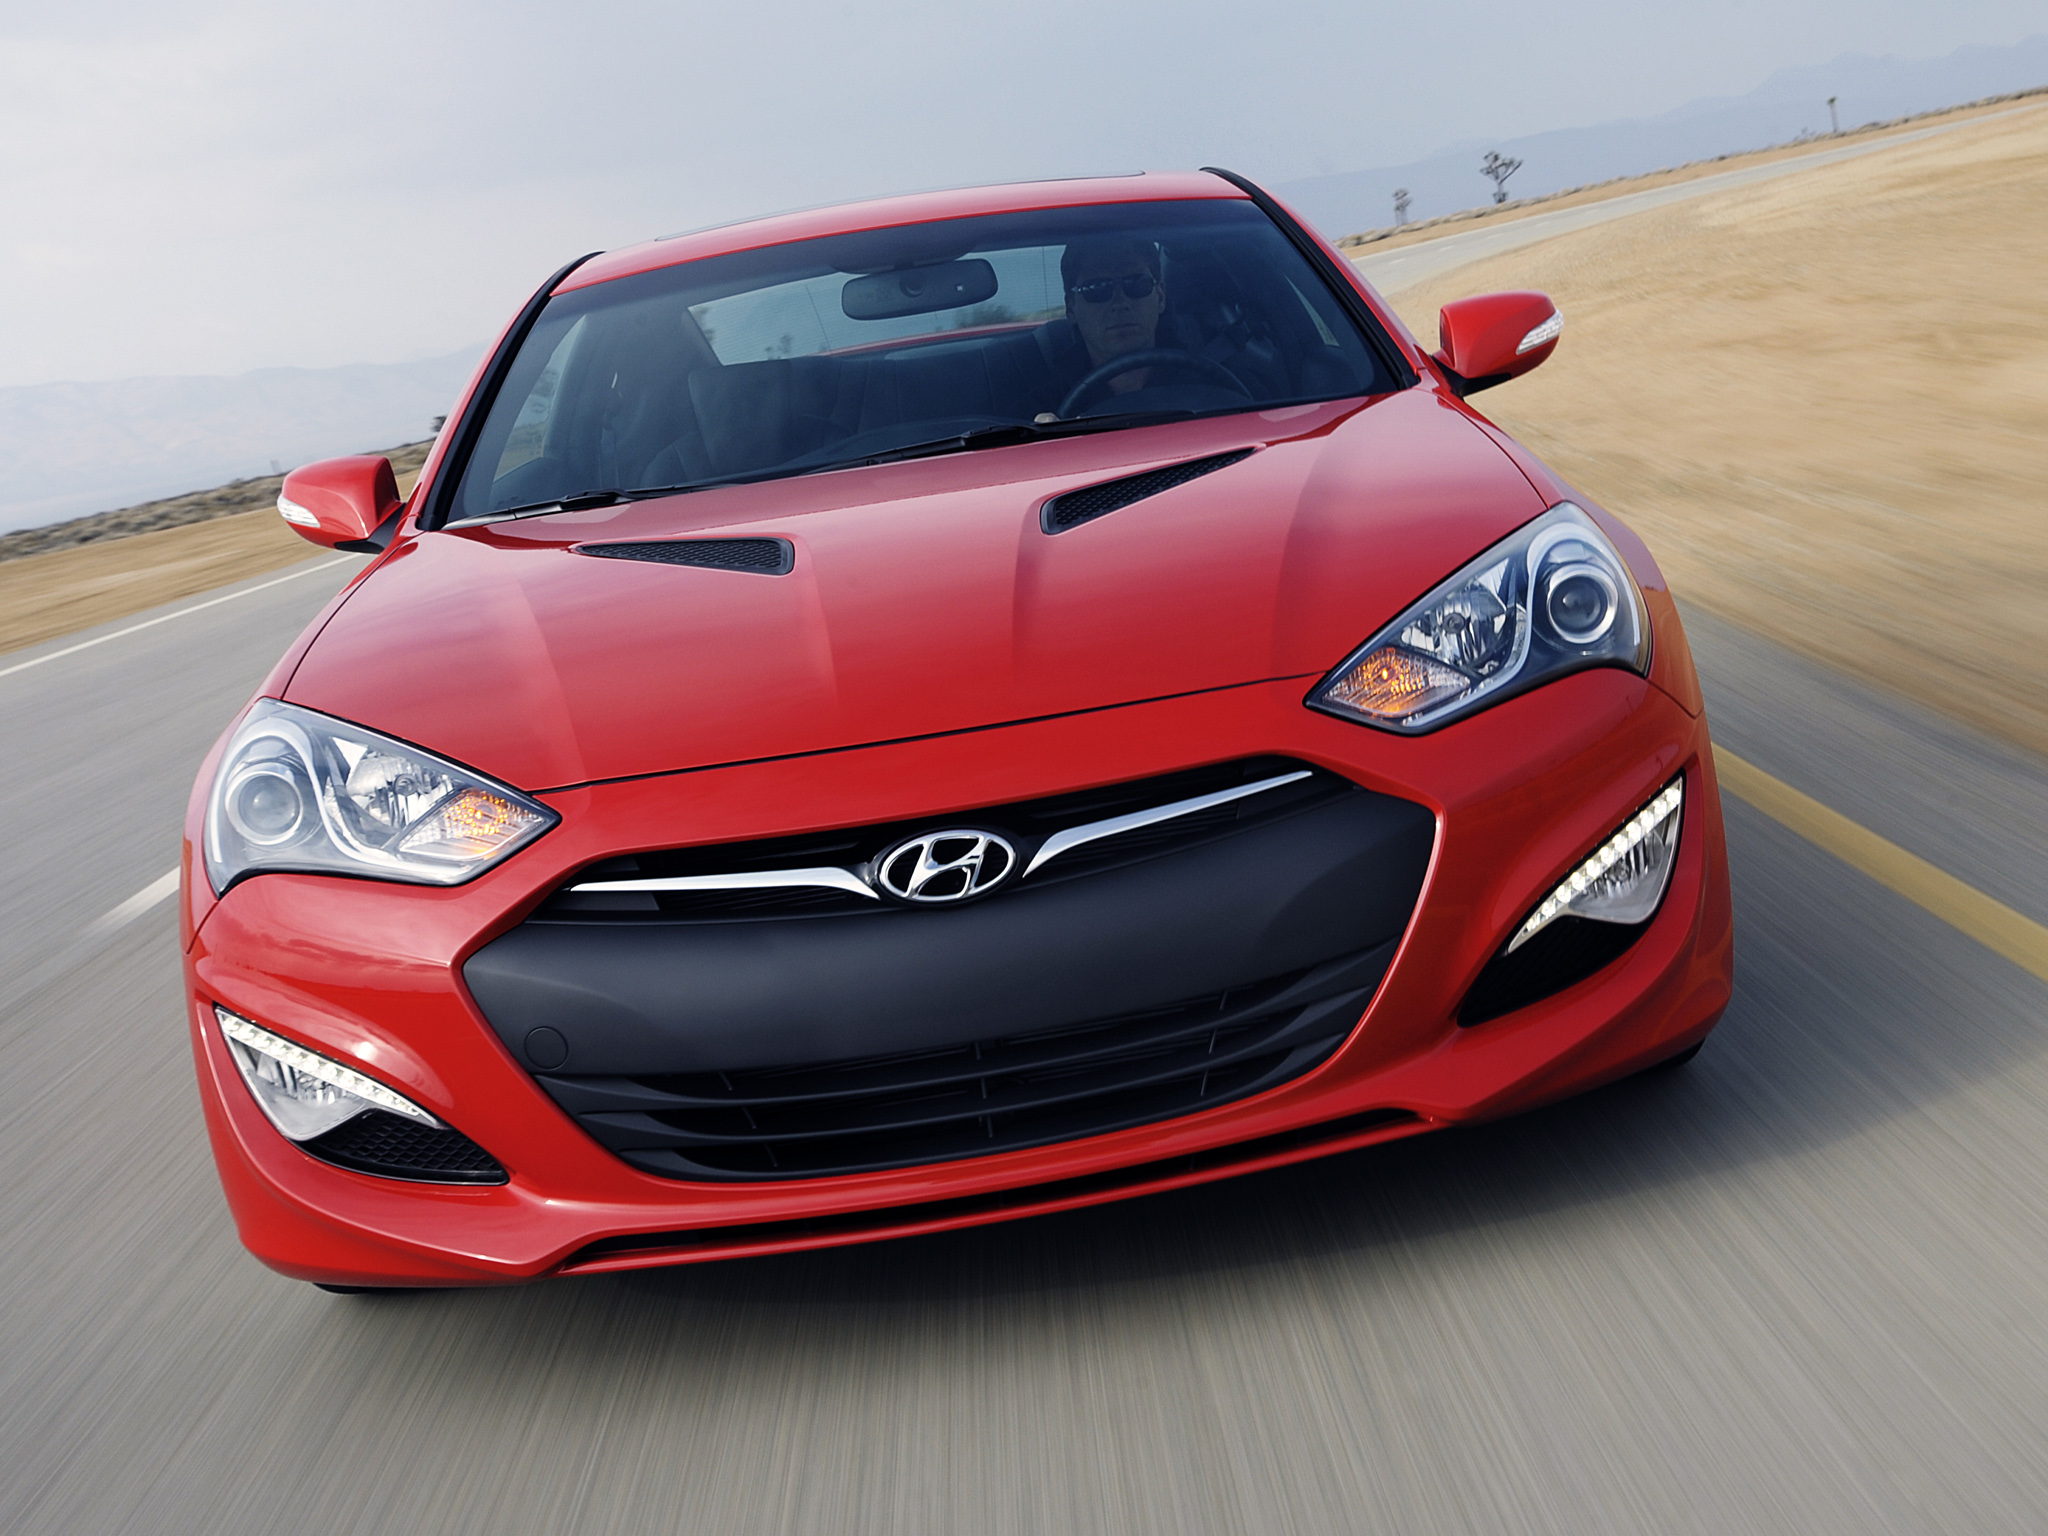 Hyundai Genesis Coupe To Be Discontinued Next Two Door More Car Luxurious In